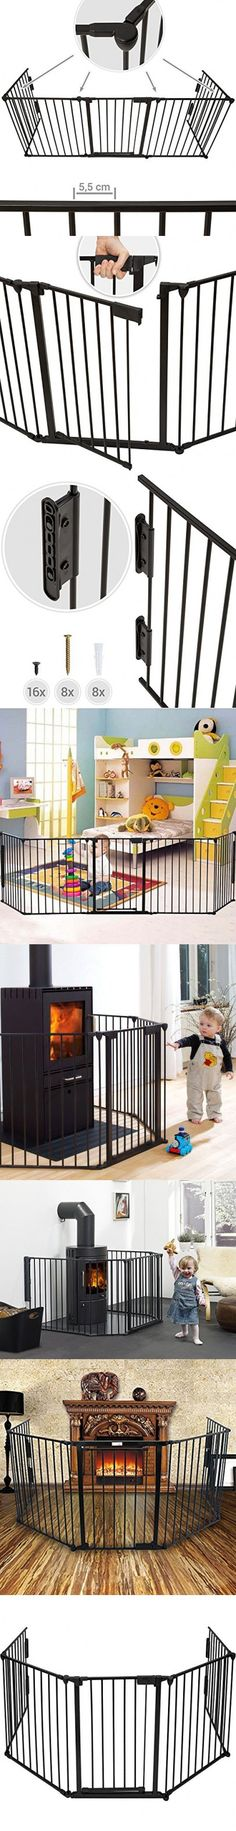 Windaze Safety Fireplace Fence Guard Hearth Gate For Baby Pet Dog Cat BBQ Metal Fire Gate Protection Fireguard 5 sides